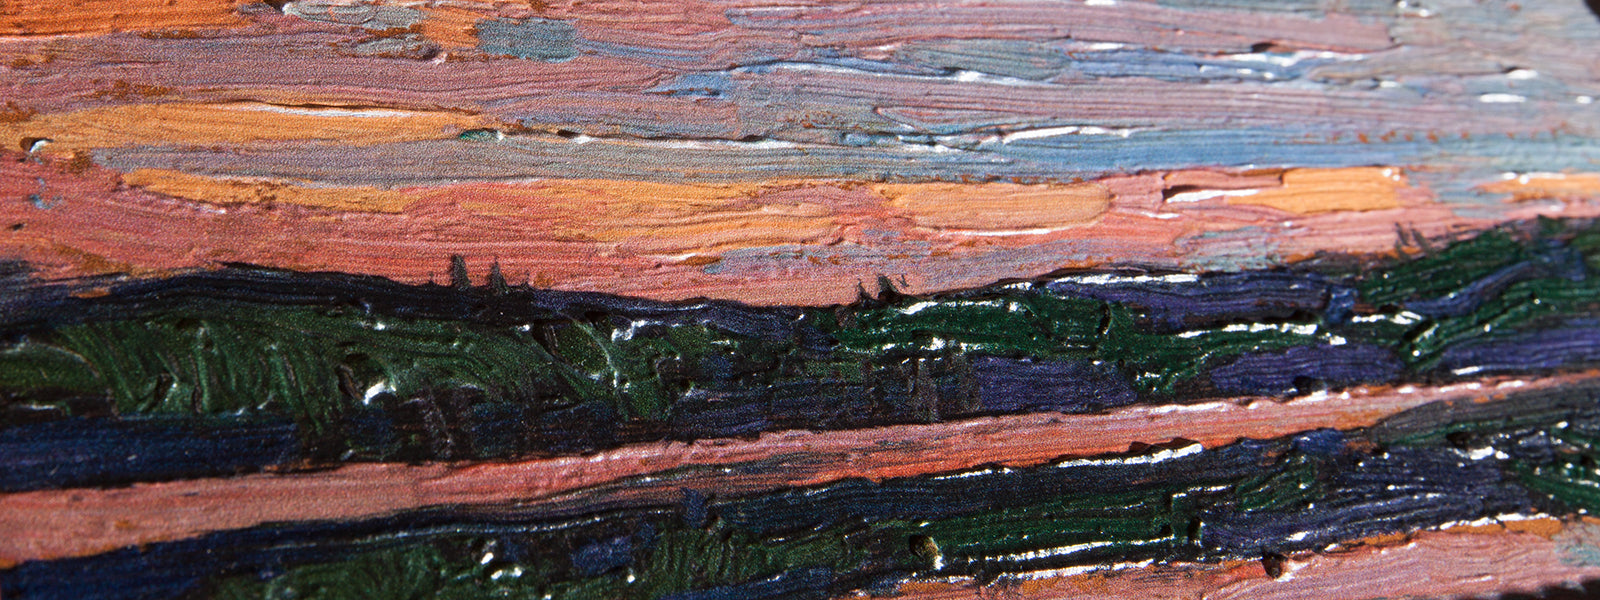 Sunset Sky, by Tom Thomson Painting Close Up